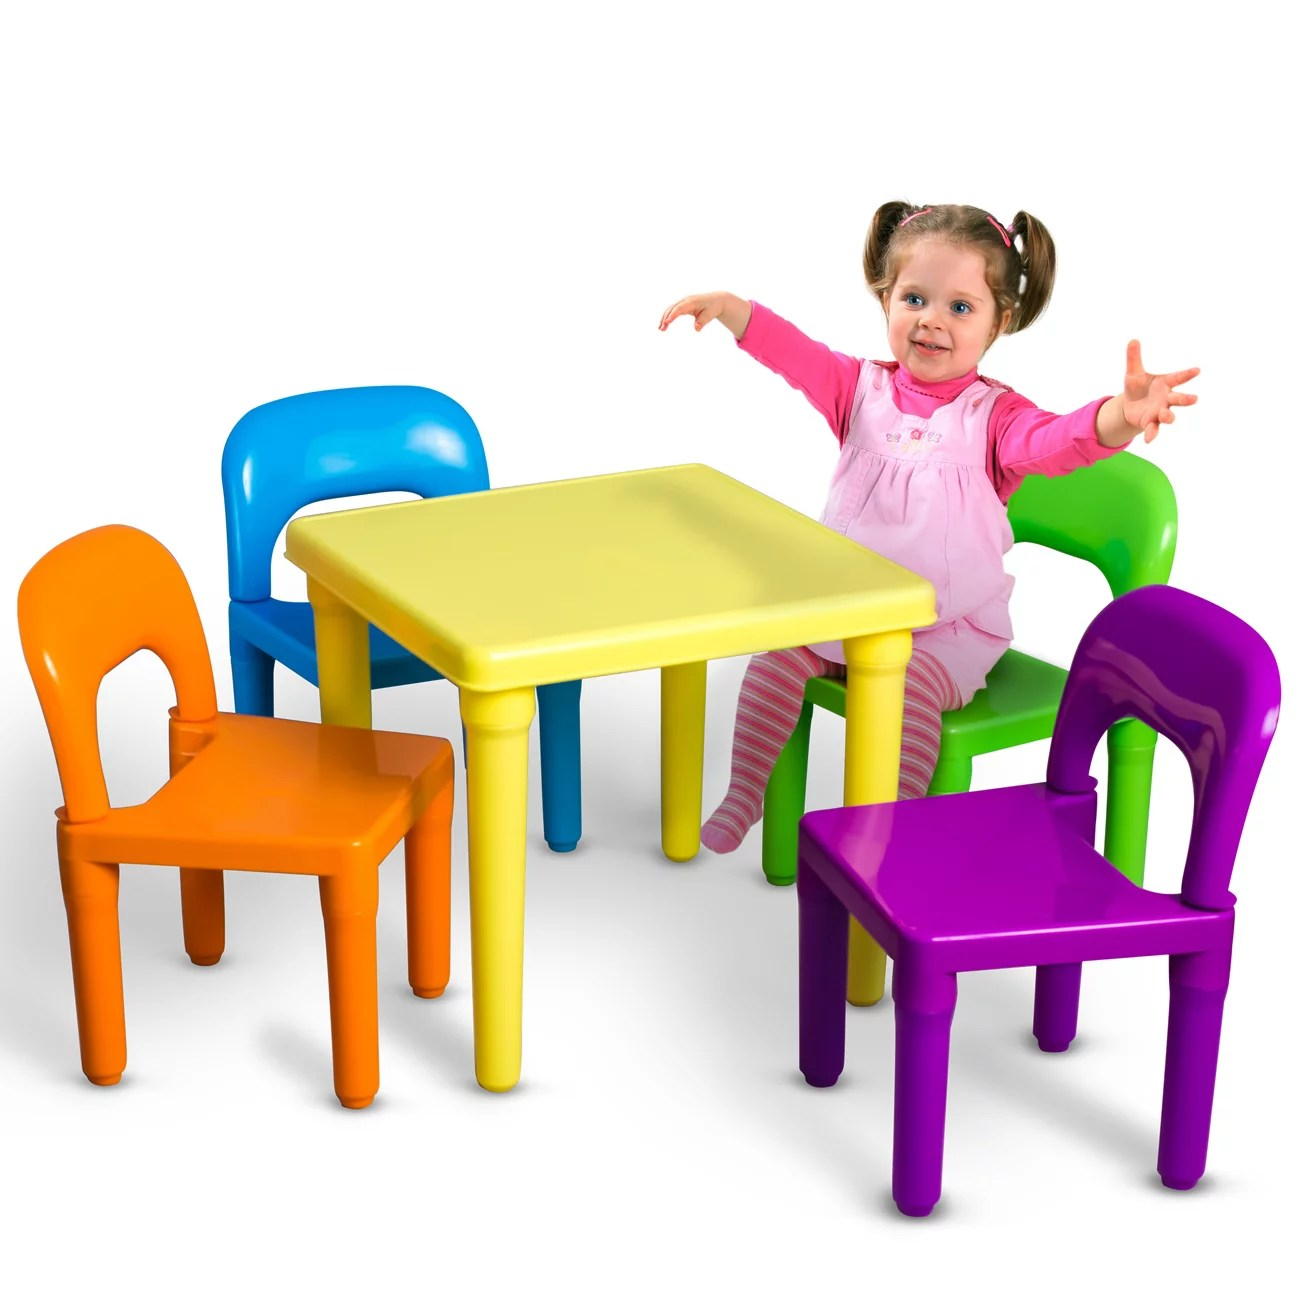 Oxgord Kids Table And Chairs Play Set For Toddler Child